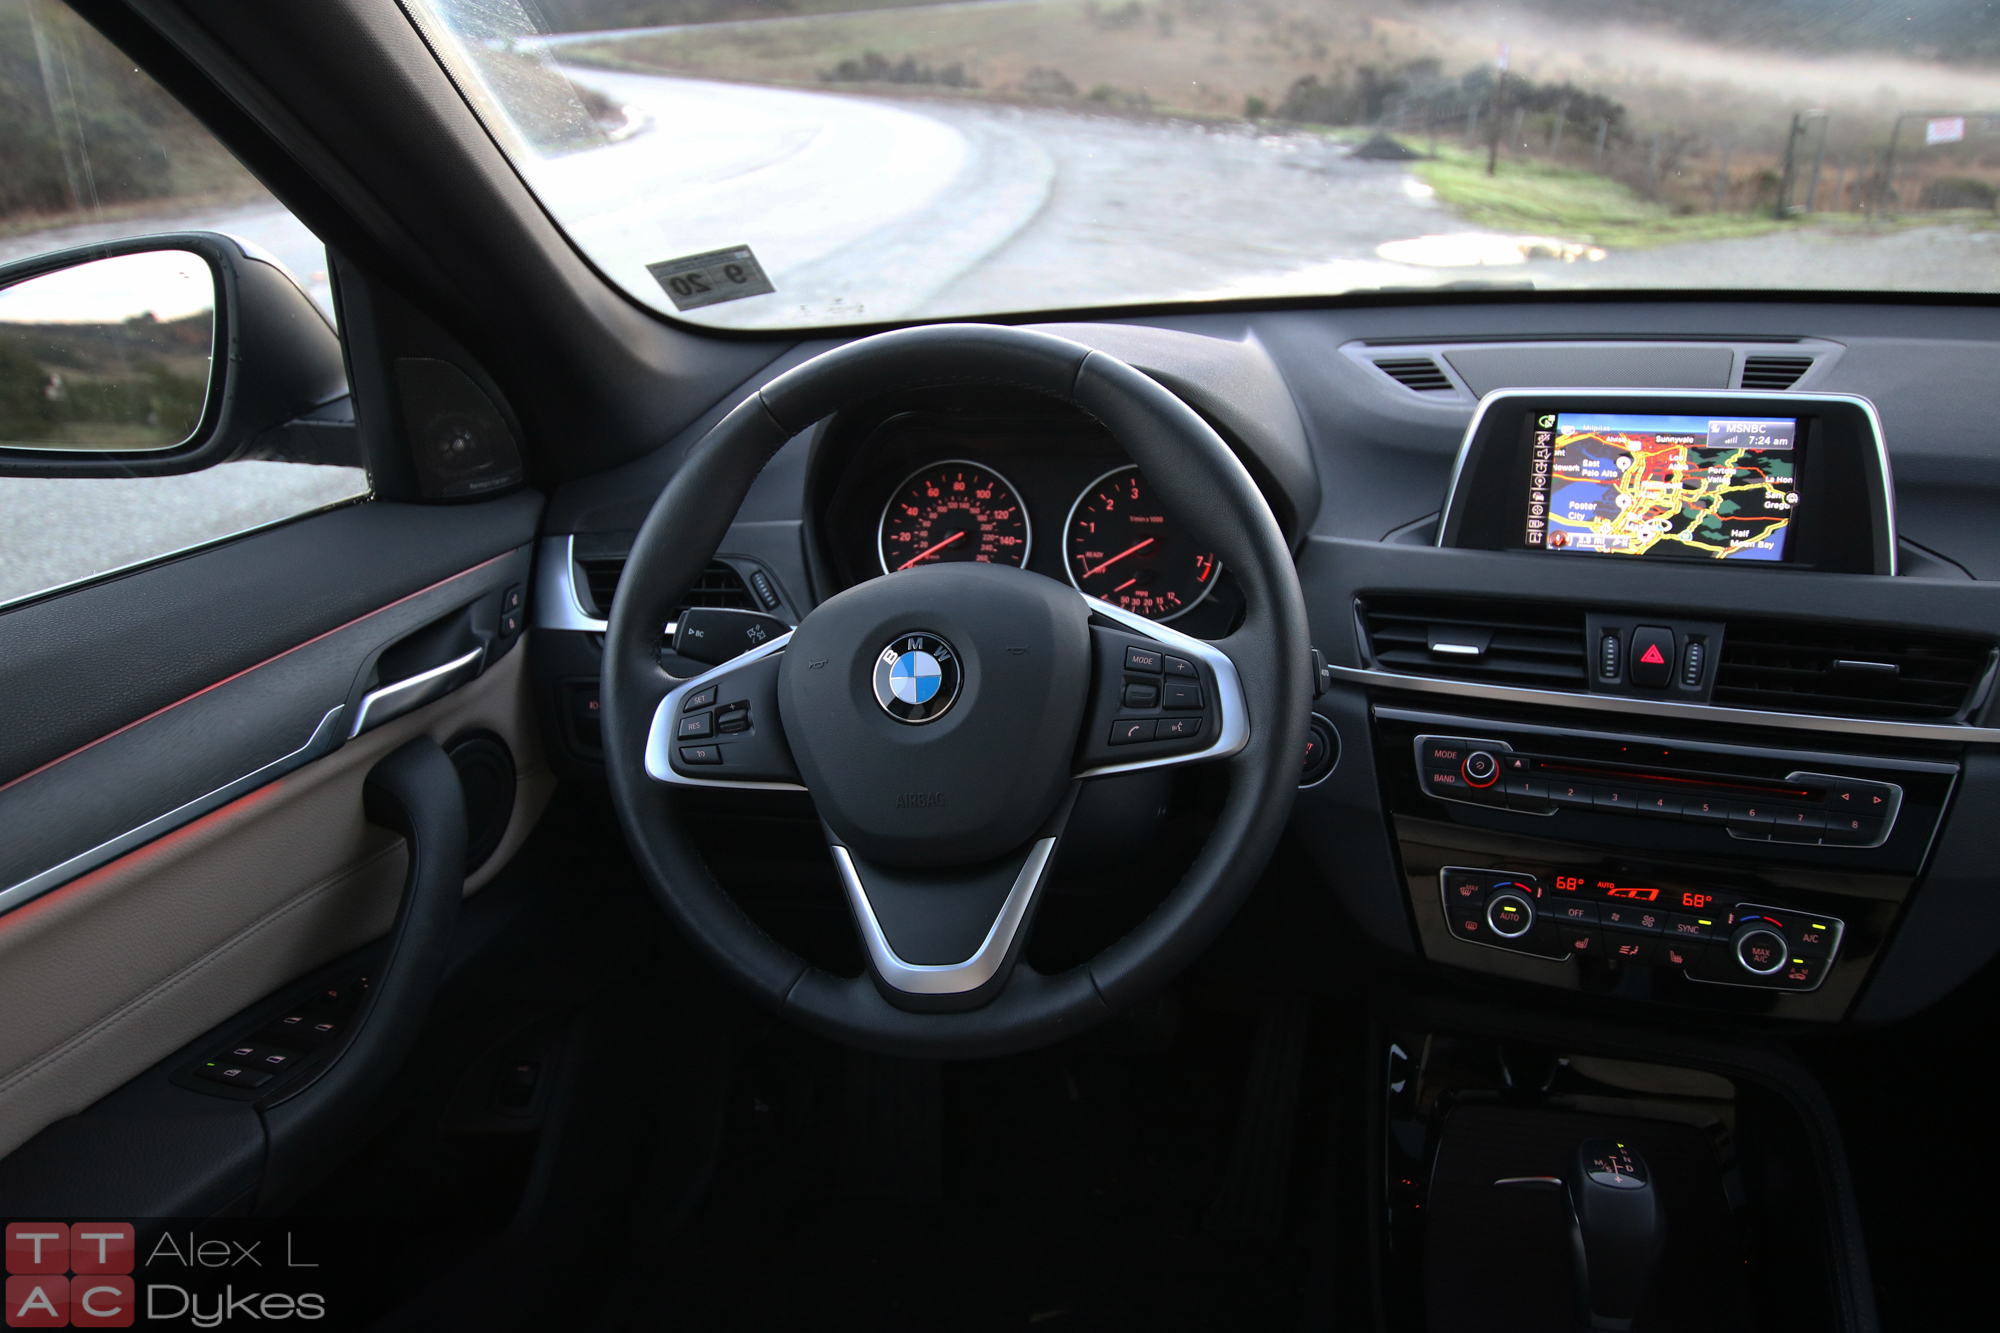 2016 bmw x1 interior 014 the truth about cars. Black Bedroom Furniture Sets. Home Design Ideas